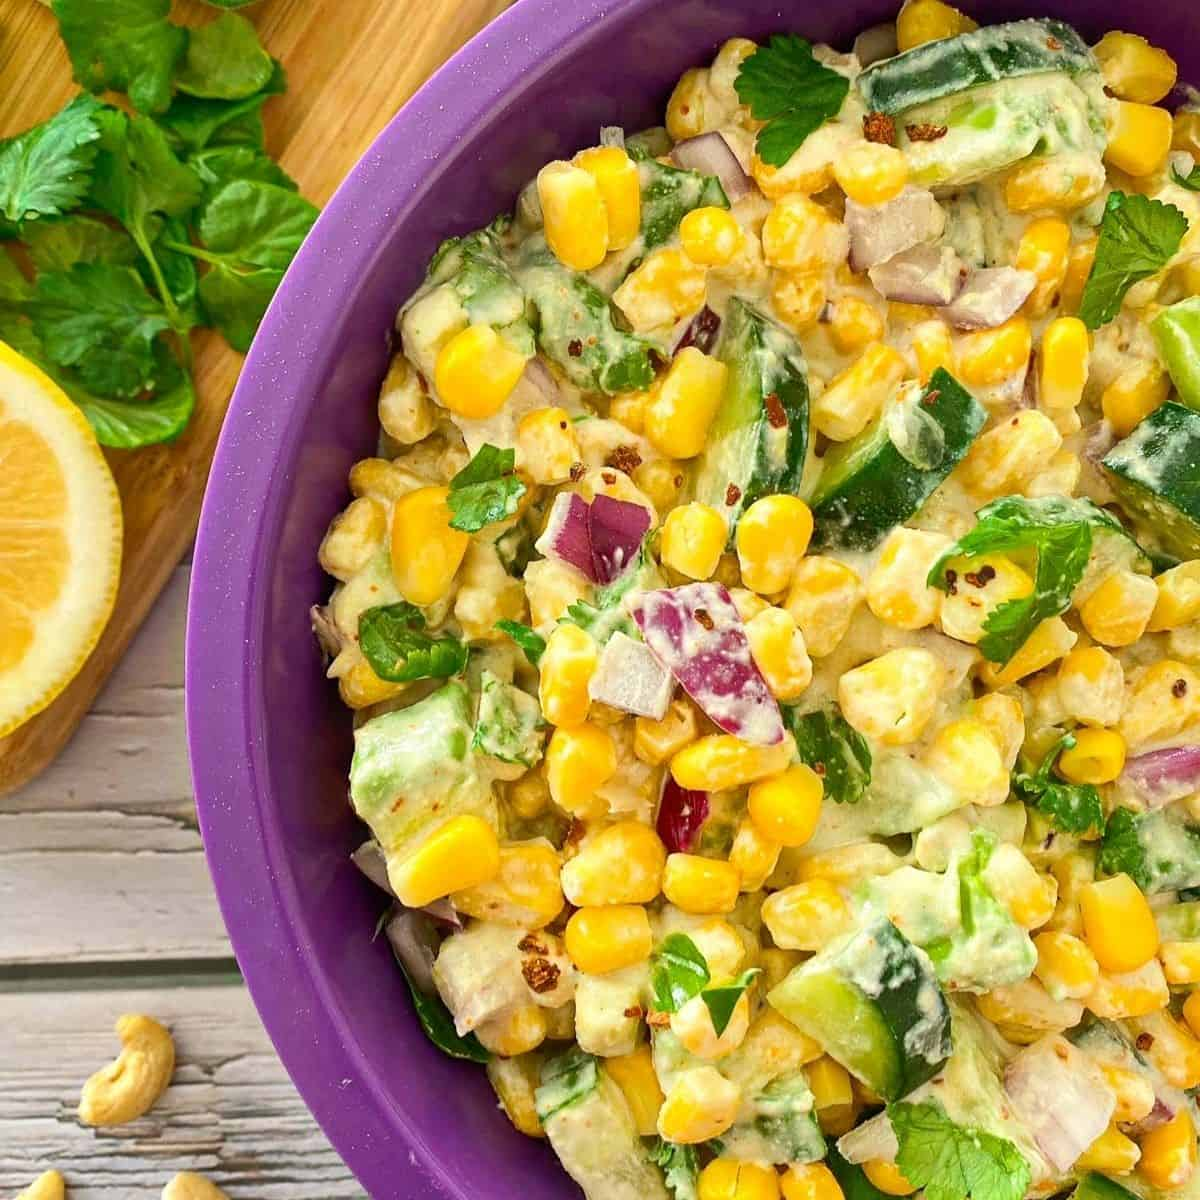 Bowl with corn salad and cutting board with cilantro, cucumber and lemon beside it.